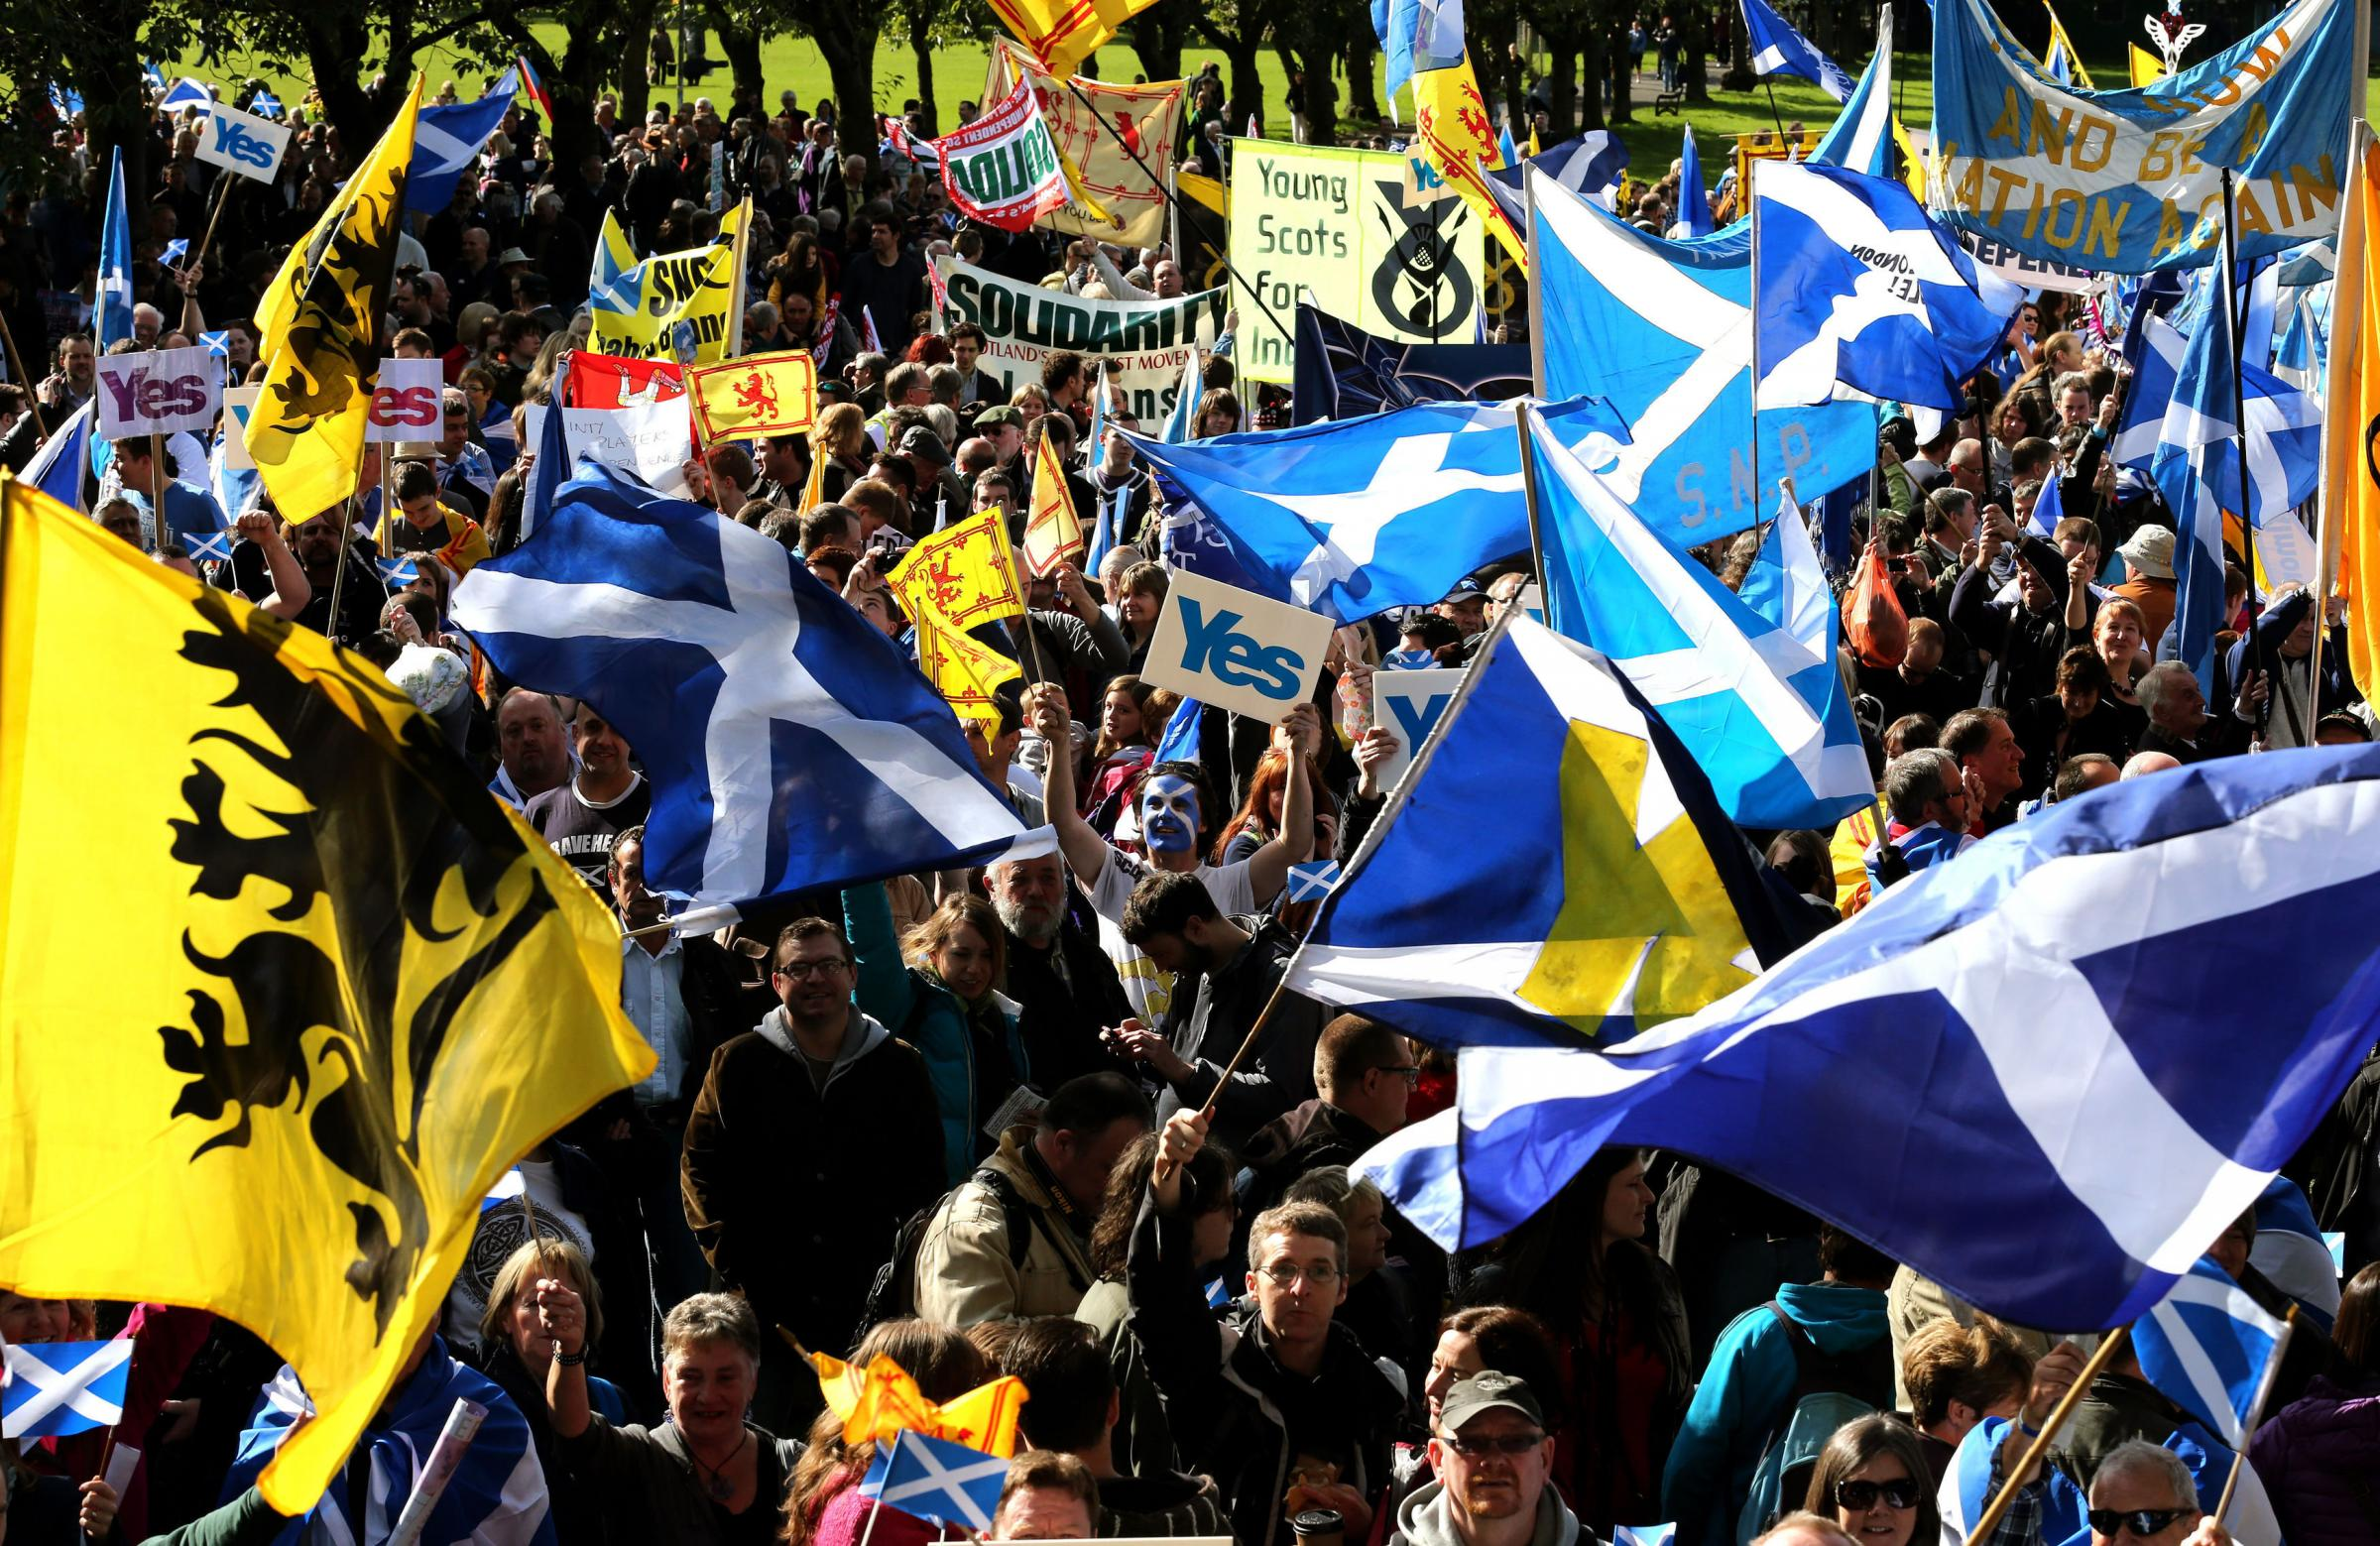 The Yes movement will be keen to hear the plans